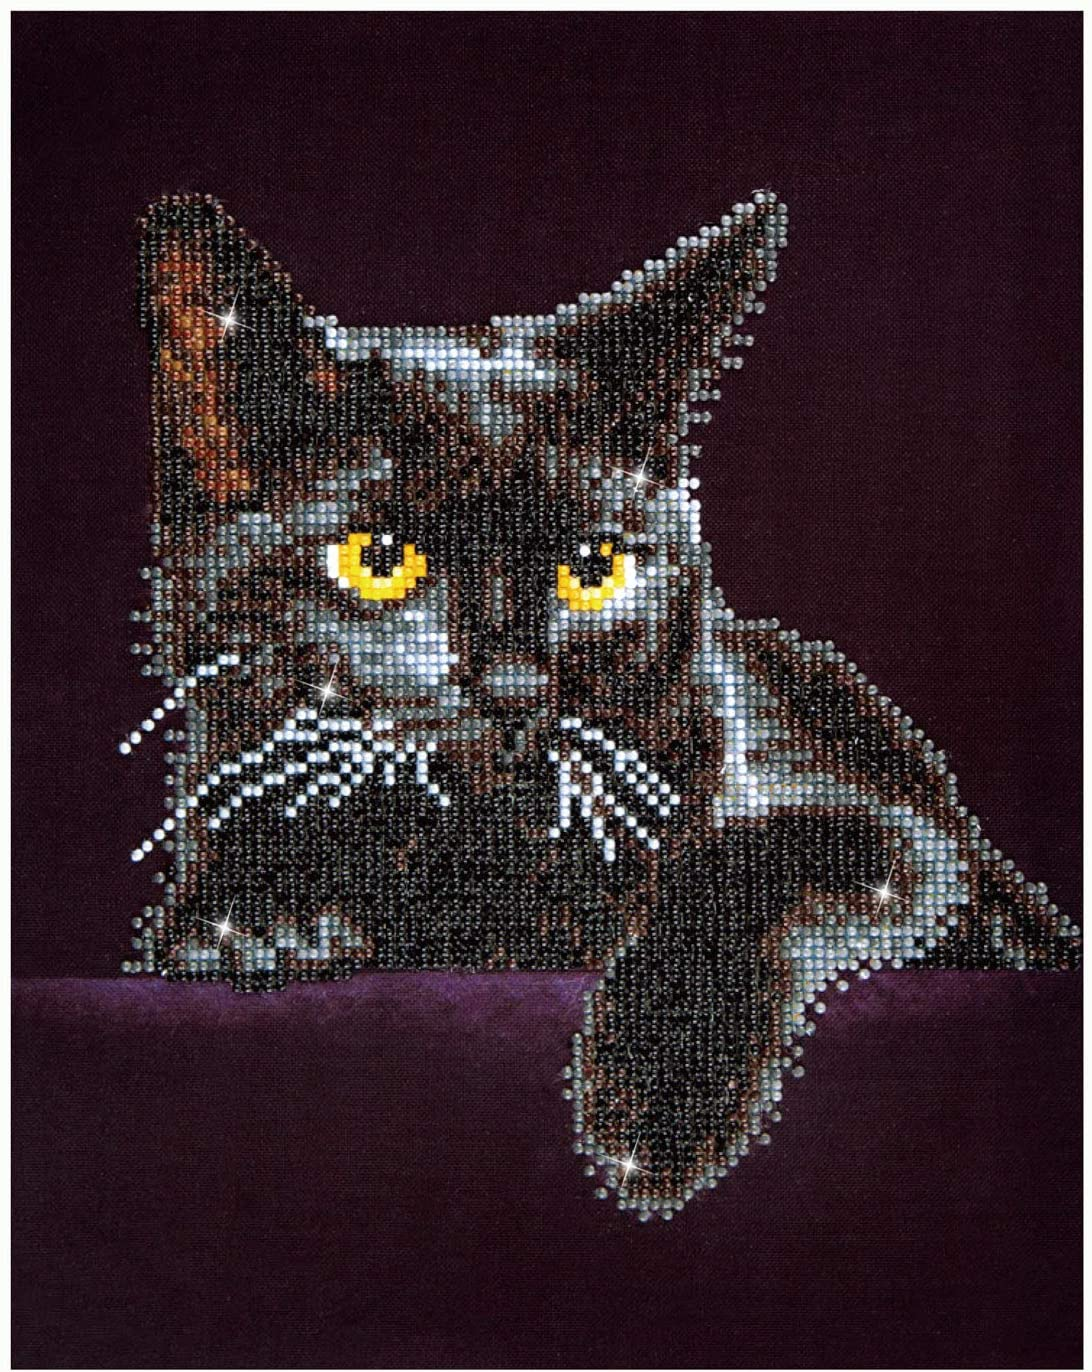 Black Cat Wall Hanging-Plastic Canvas Pattern or Kit